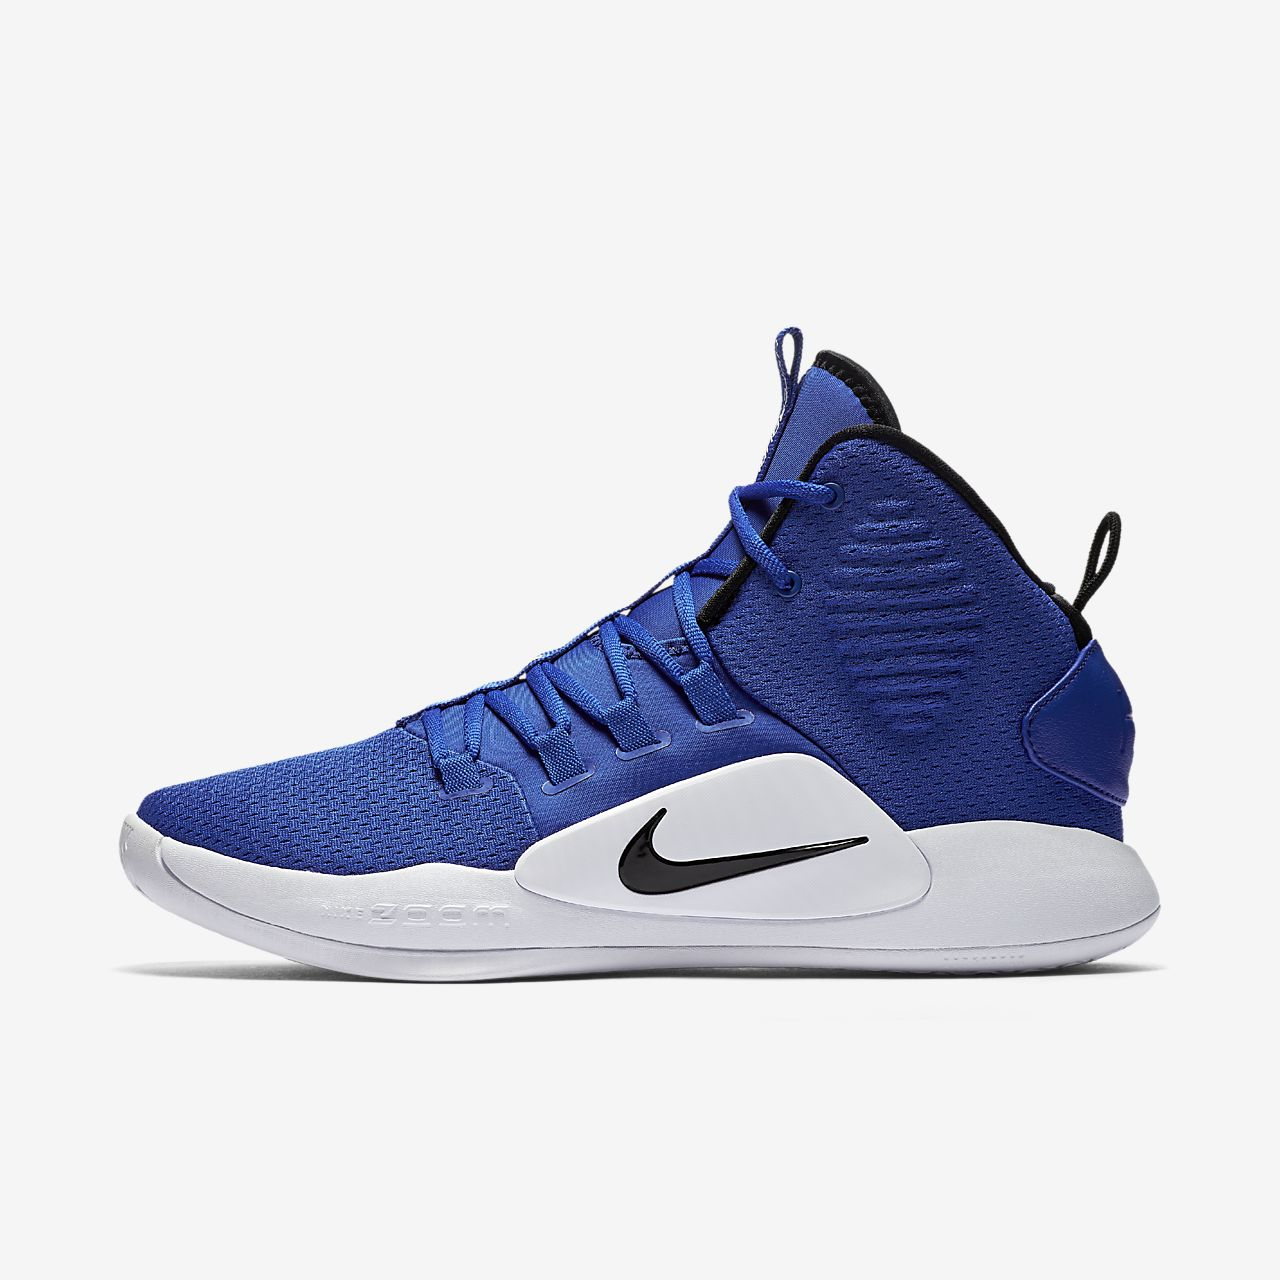 pretty nice df089 6c040 ... Nike Hyperdunk X TB Basketball Shoe